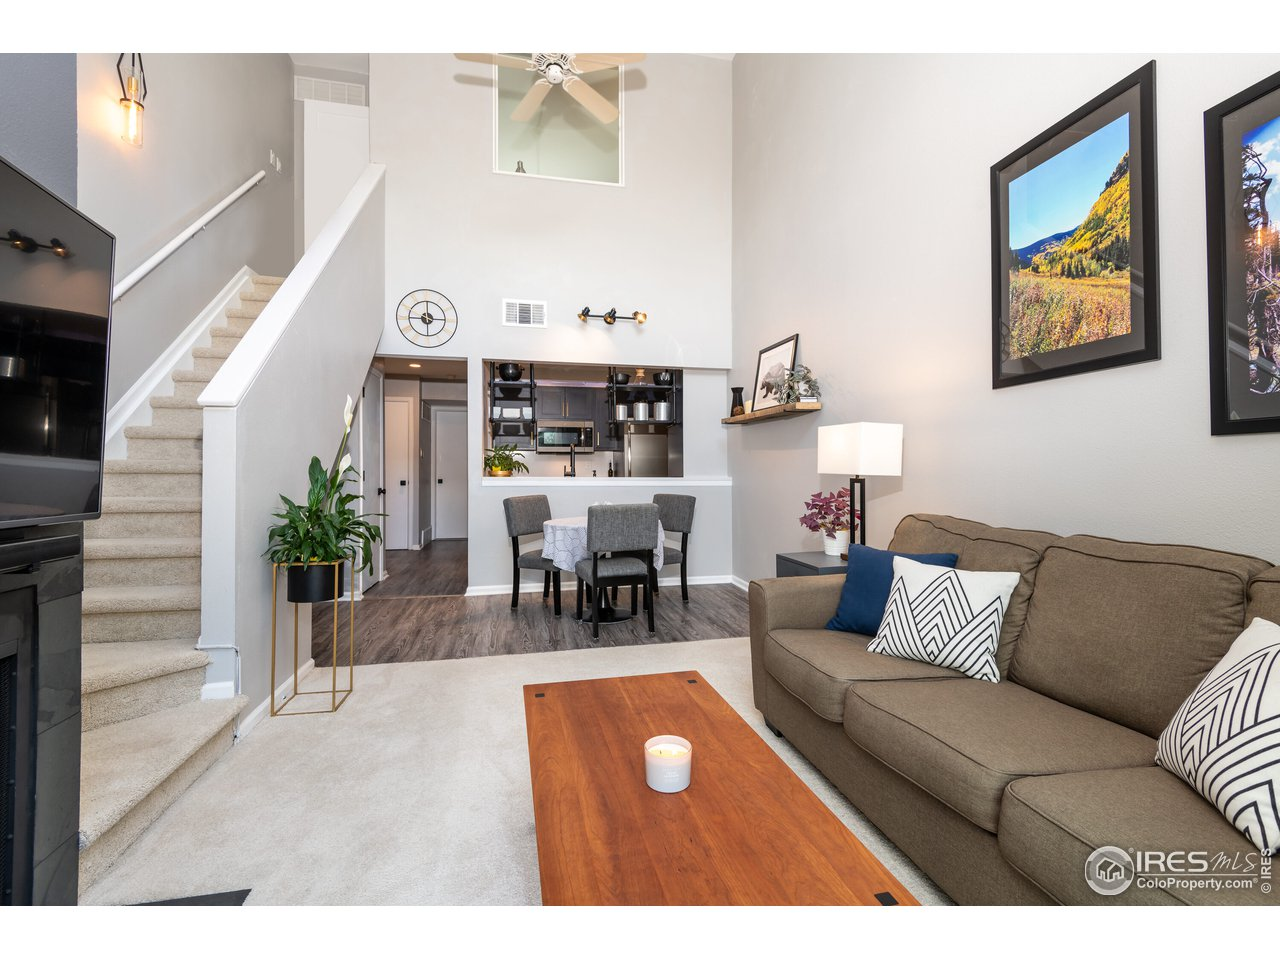 Soaring ceilings in this recently fully remodeled condo